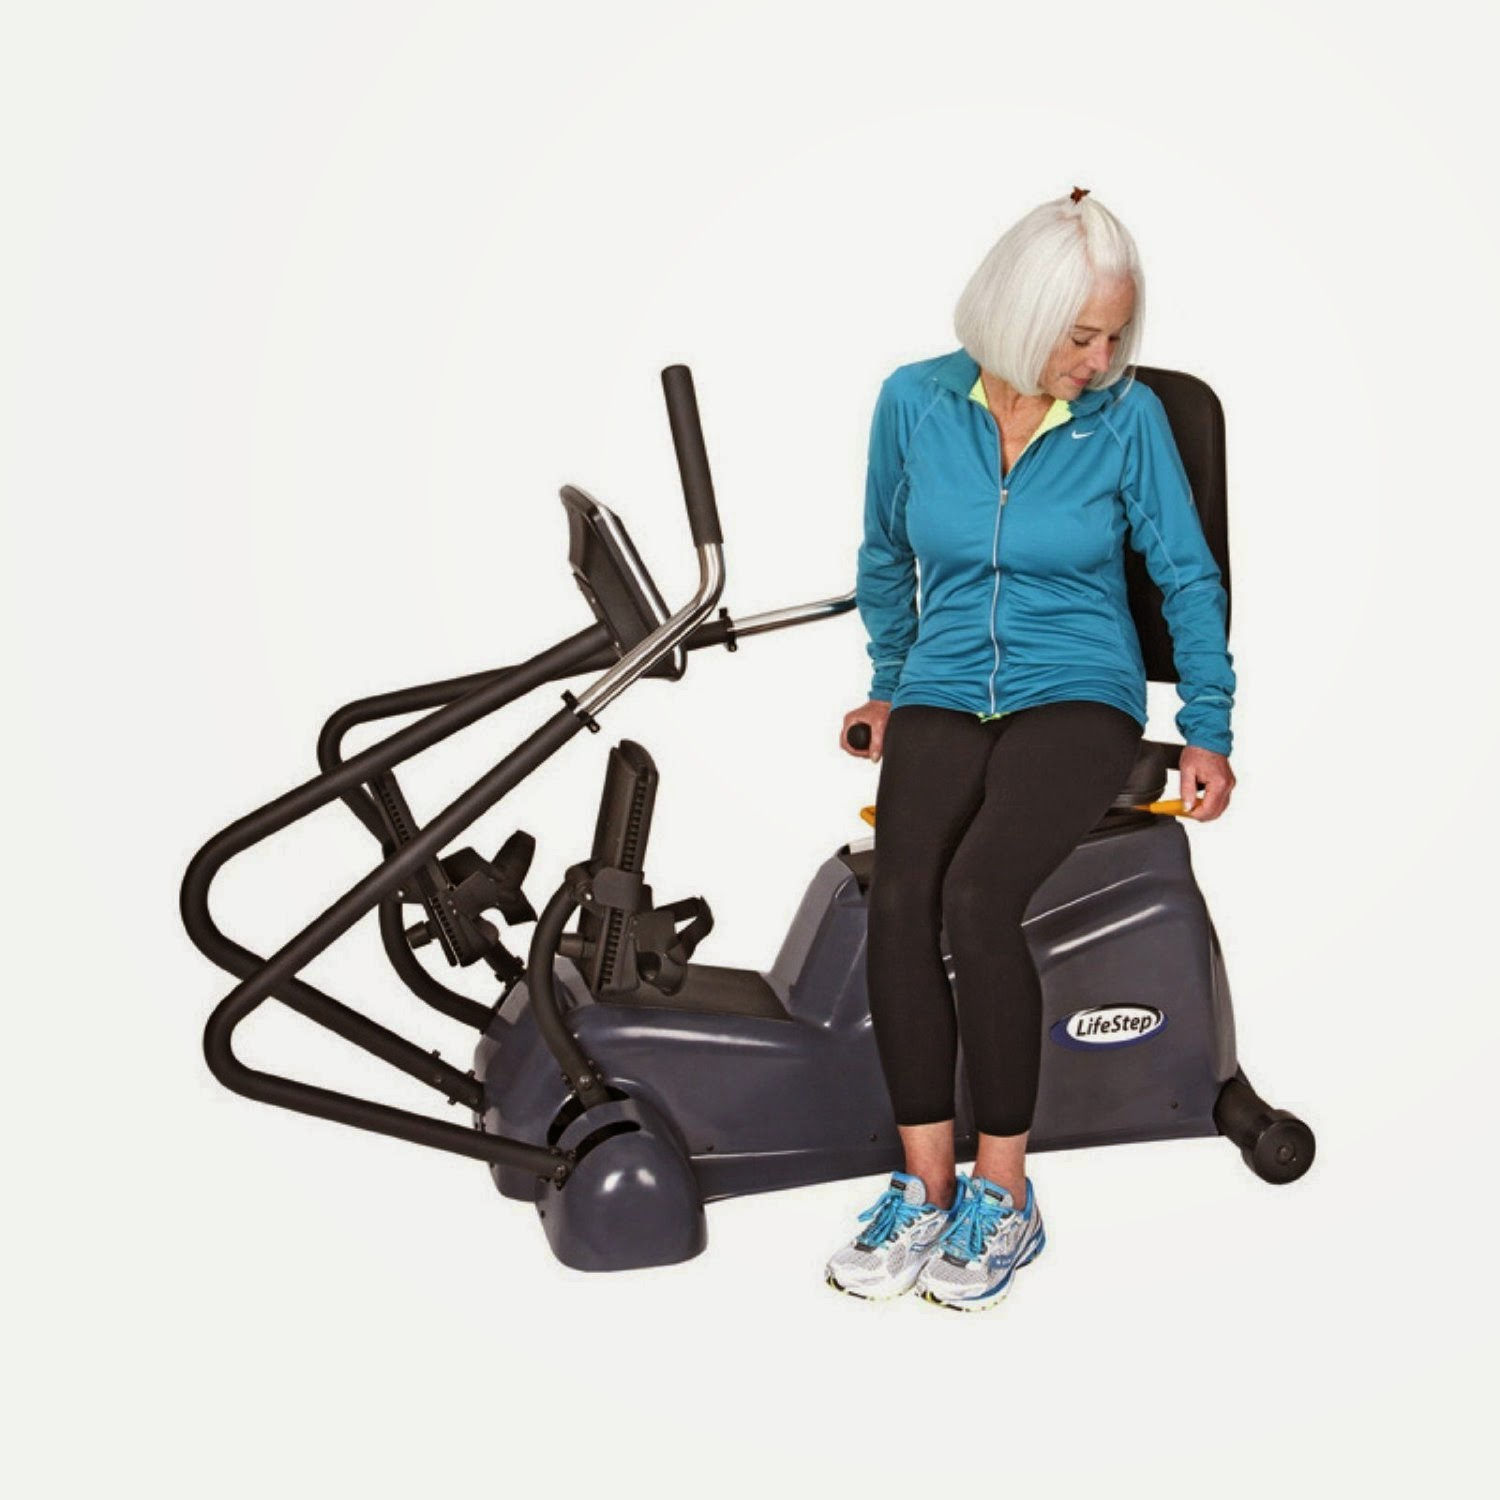 HCI Fitness LifeStep, swivel seat for easy mounting & dismounting